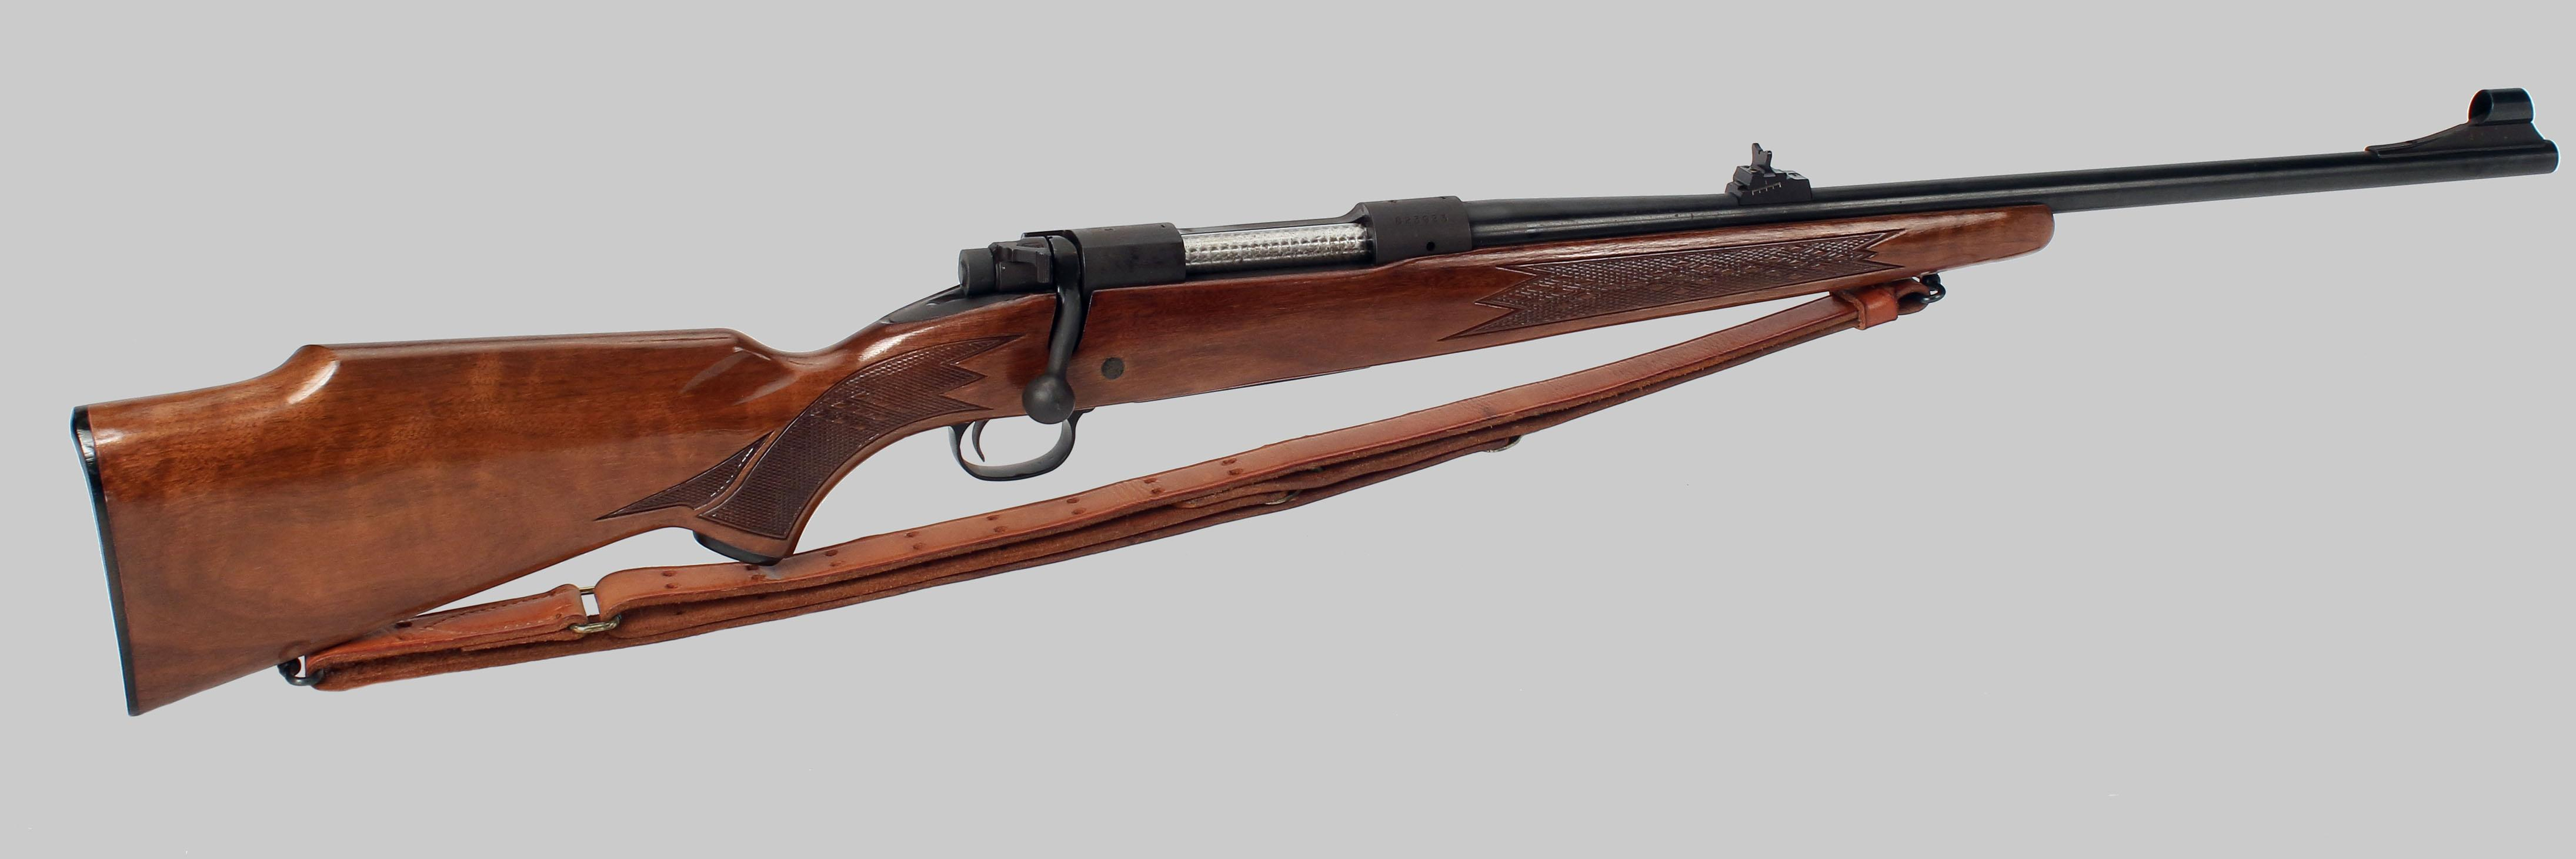 winchester singles over 50 Bore is shiny with strong rifling case colored receiver has about 50% fading colors remaining single set tr click for more info  scarce caliber 50-95 wcf just over 100 were made.